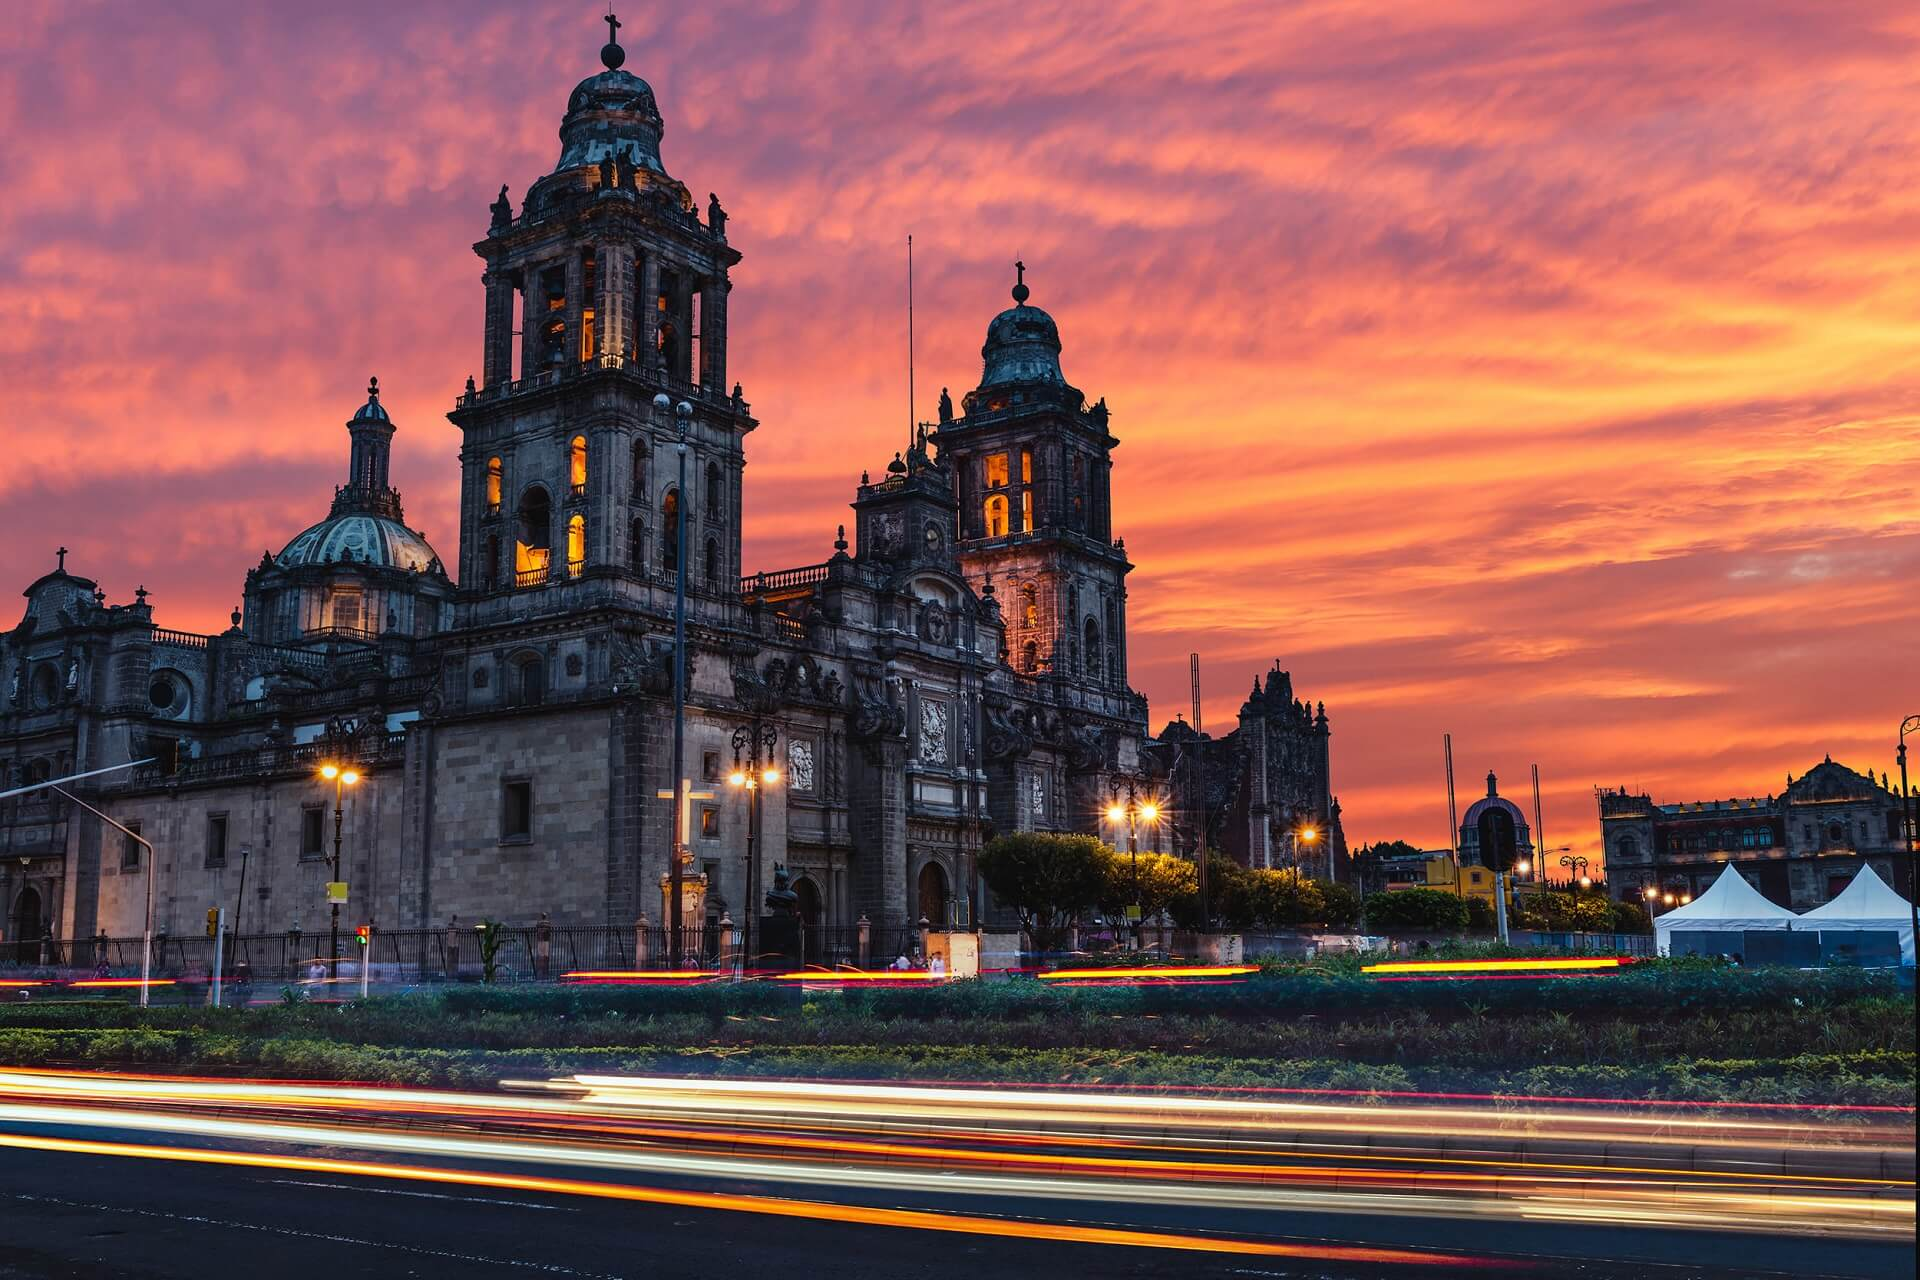 Mexico City - 6 Cities Where Art Lives